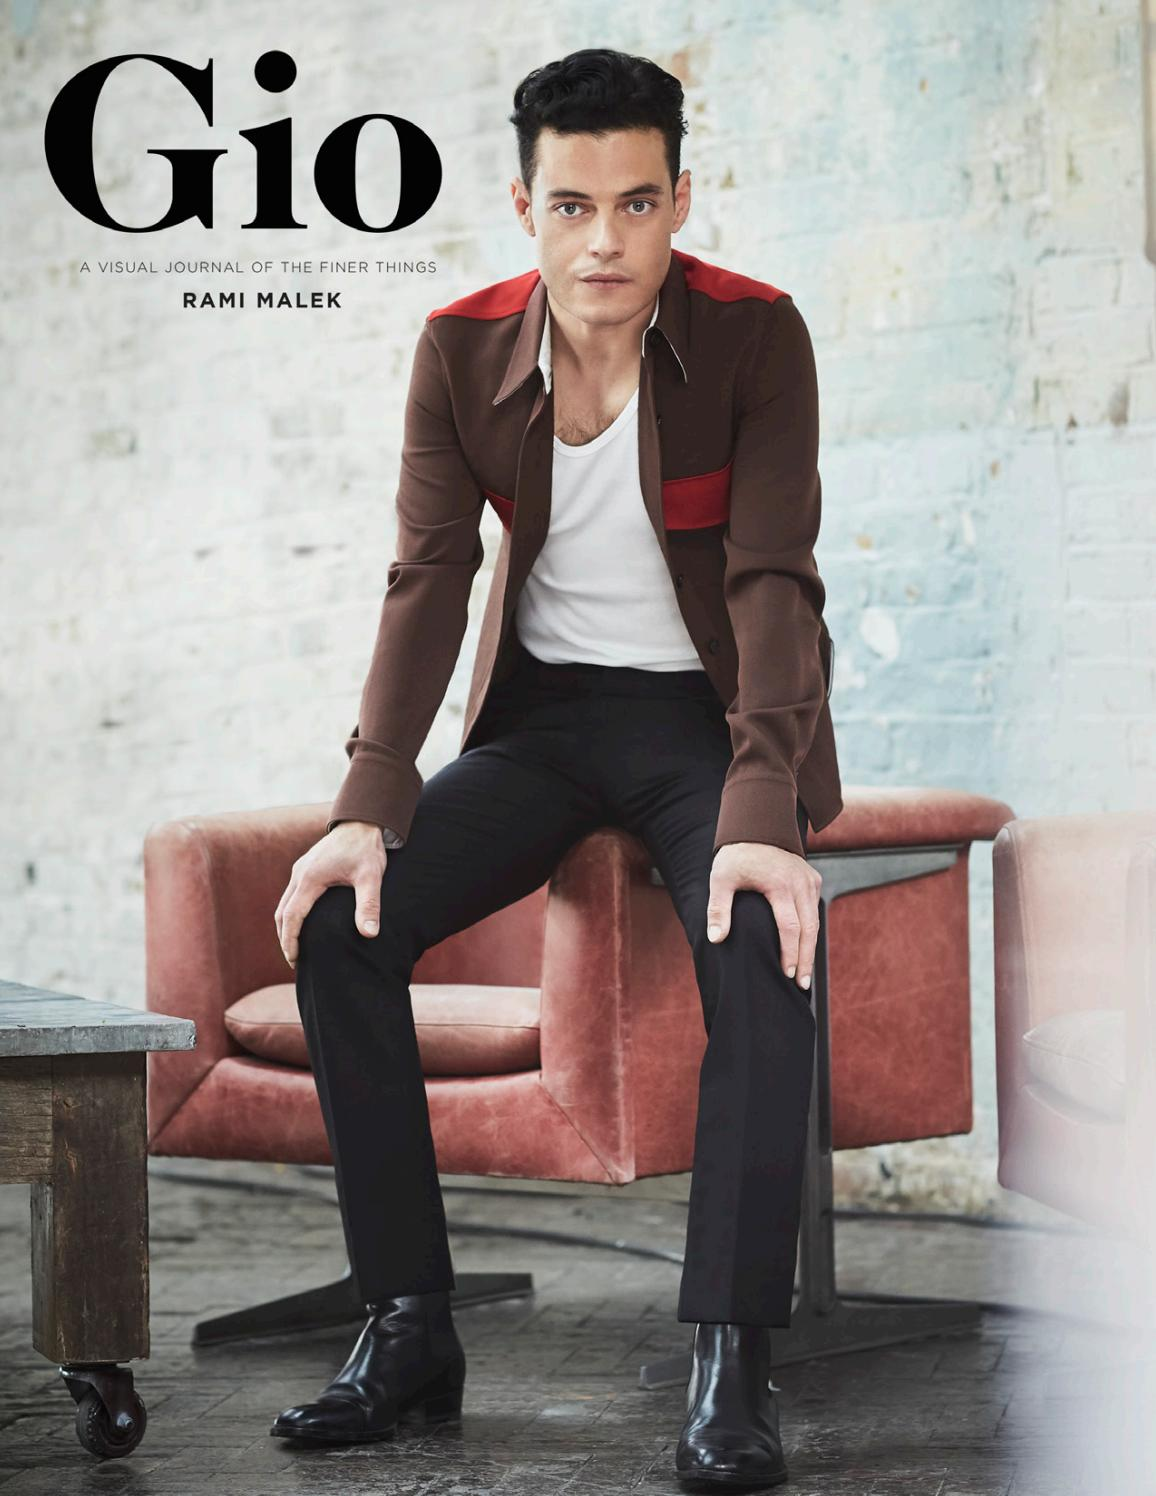 6d99c0a49cd6a8 Gio Journal - Rami Malek by giojournal - issuu